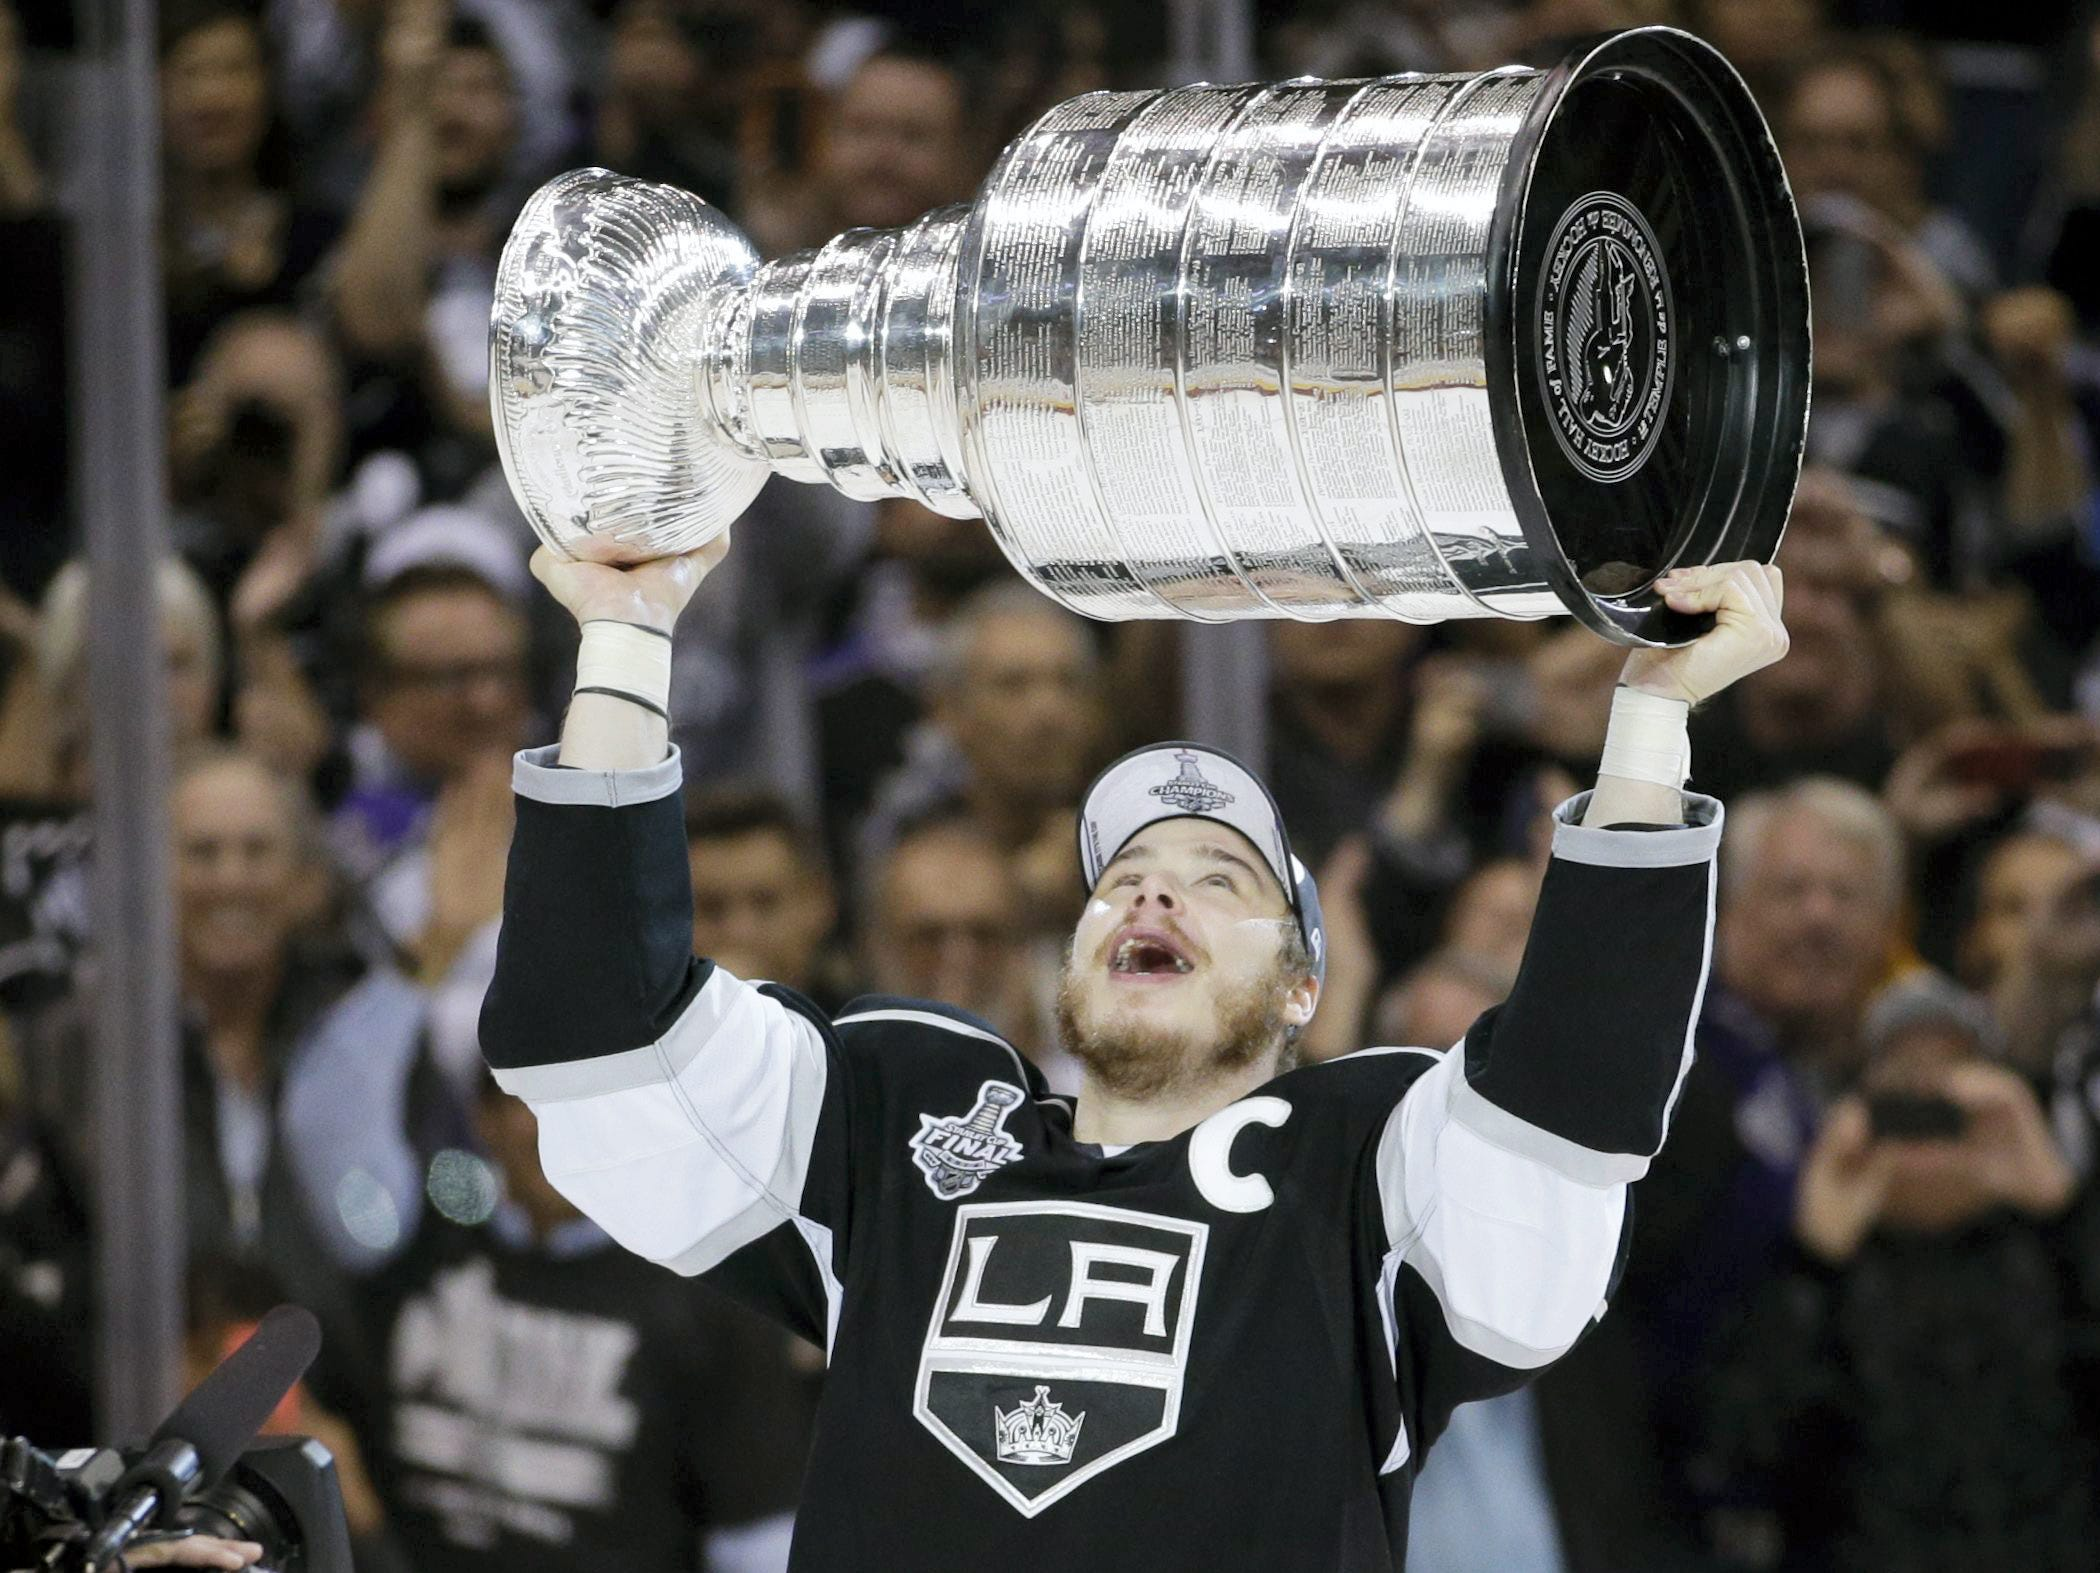 Los Angeles Kings right wing Dustin Brown, an Ithaca native, raises the Stanley Cup after beating the New York Rangers in overtime in Game 5 of the NHL Stanley Cup Final series Friday, June 13, 2014, in Los Angeles.